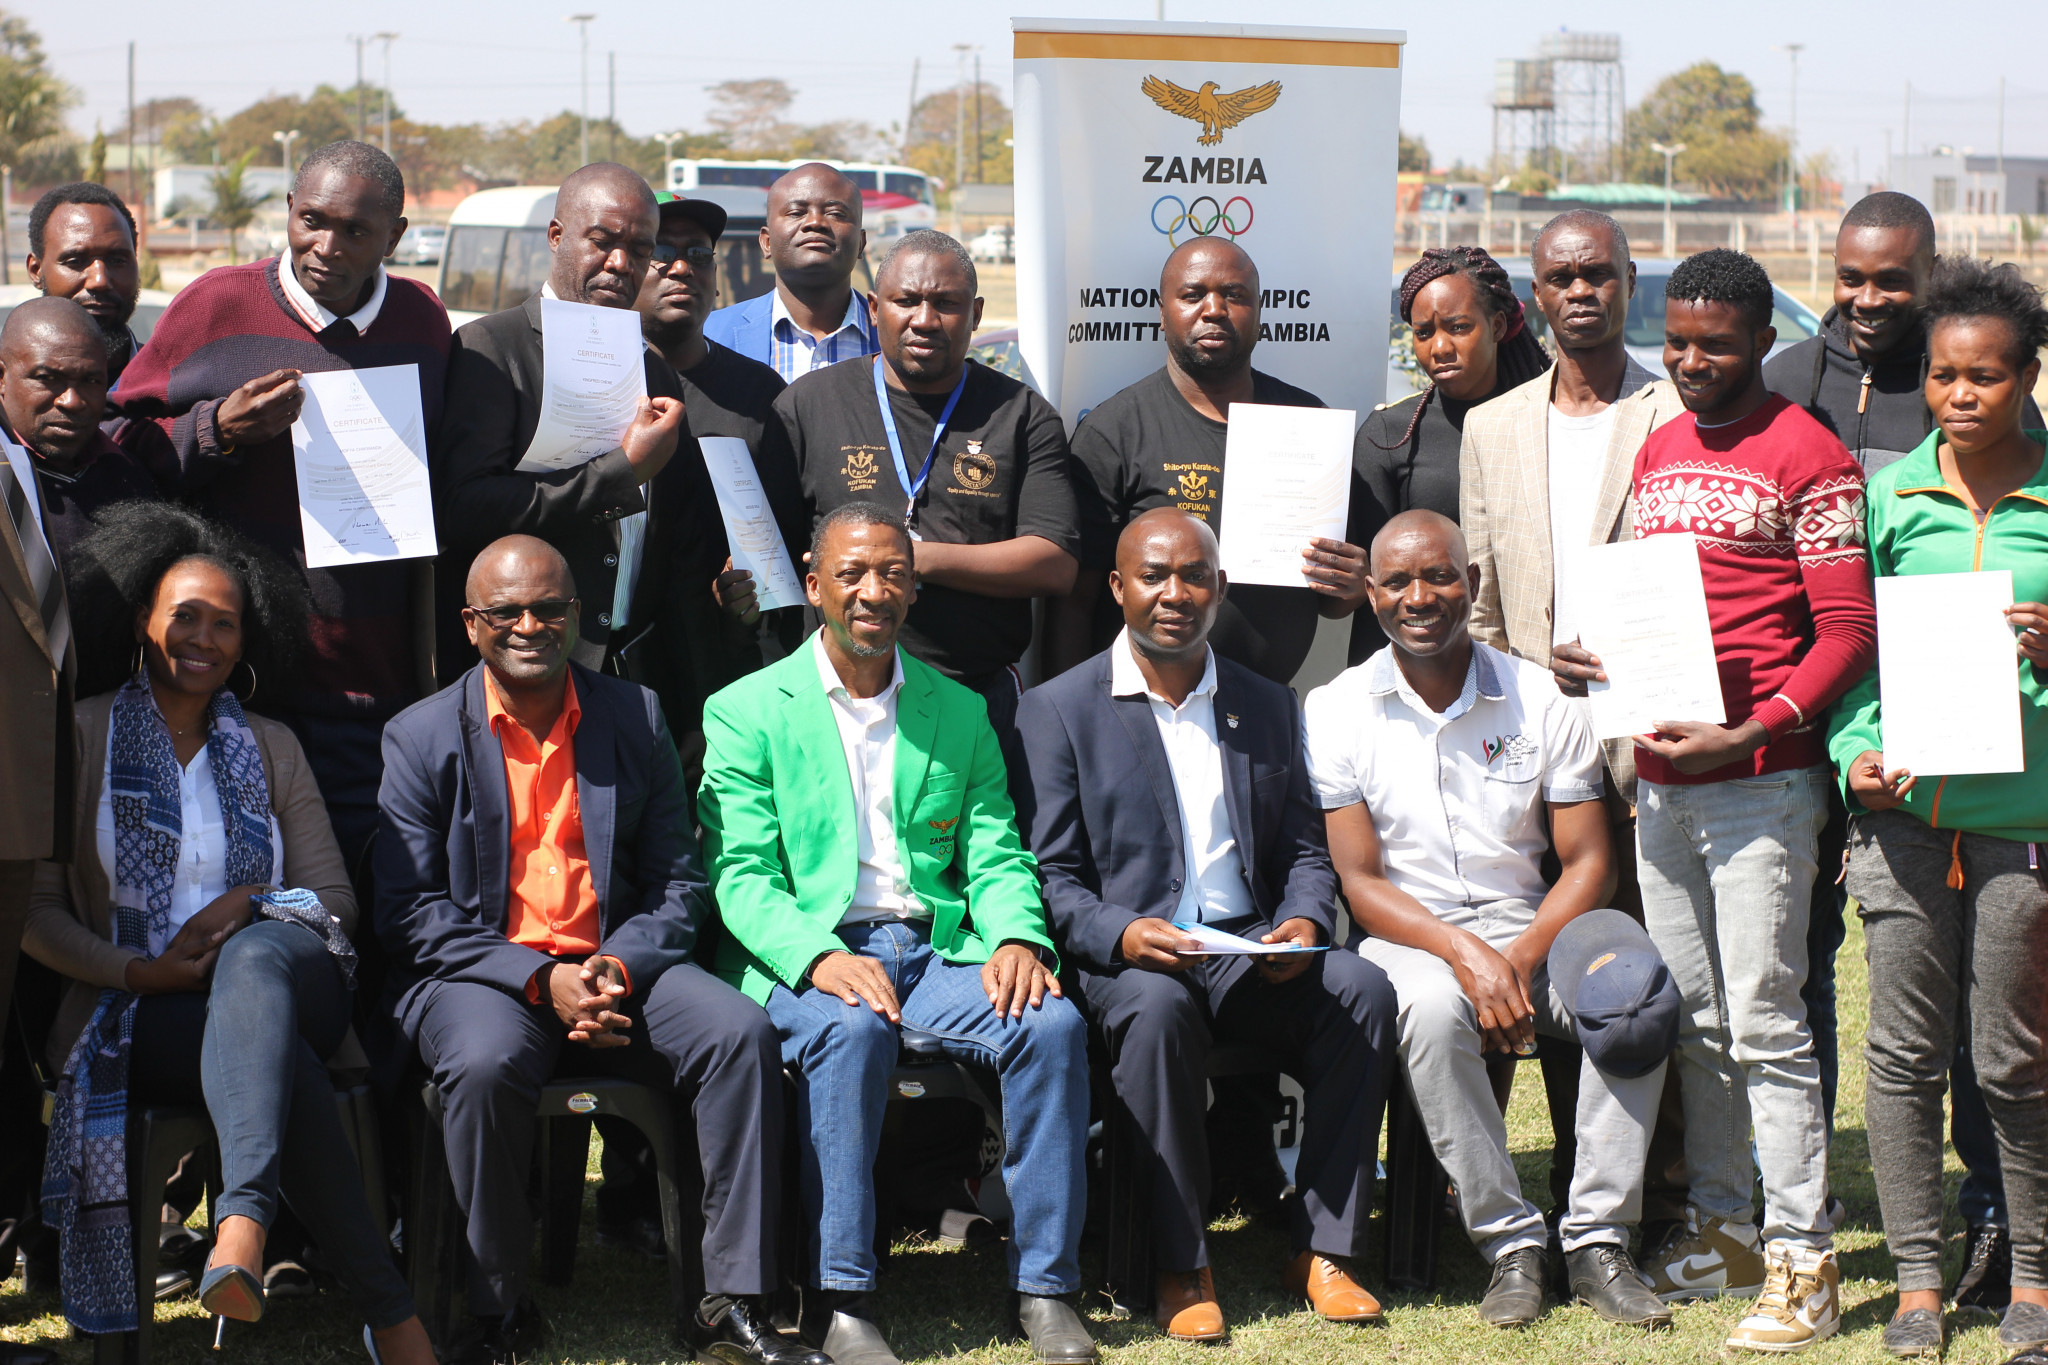 The event in Lusaka was attended by 24 participants, including athletes ©NOCZ